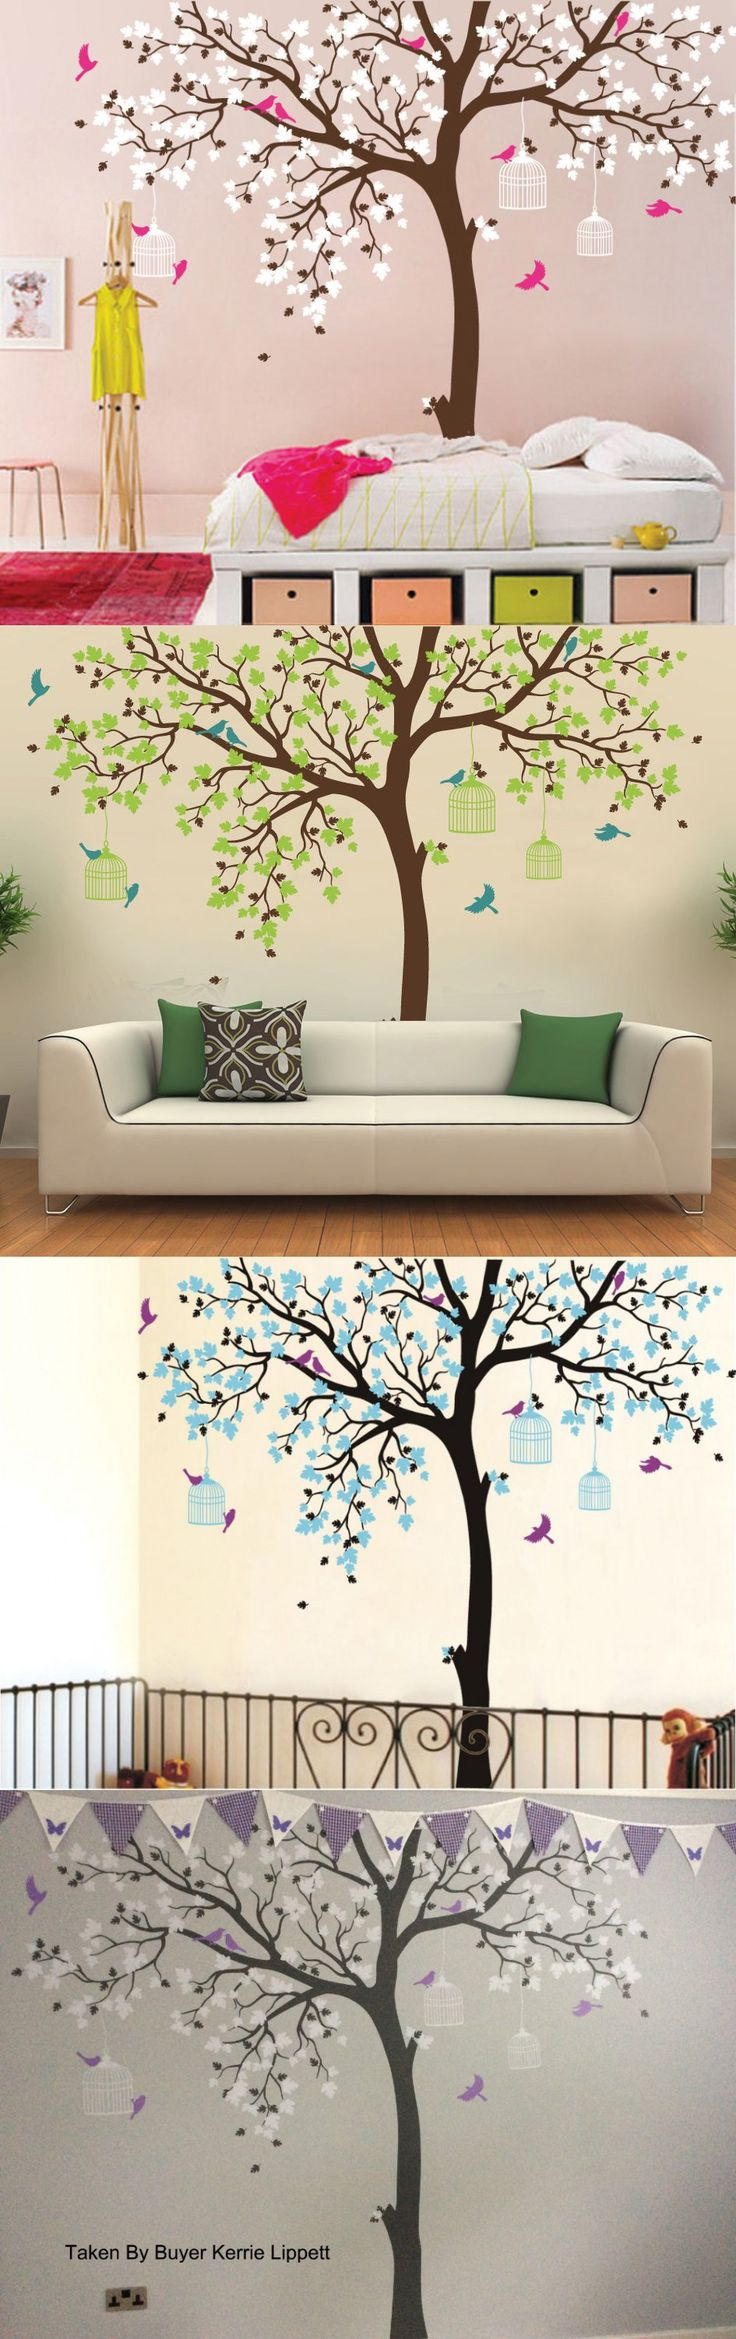 Bird Cage Tree Nursery Wall Stickers Removable Vinyl Decal Kids Baby Decor Art TV Background Wall Decals Kids Bedroom Wallpaper